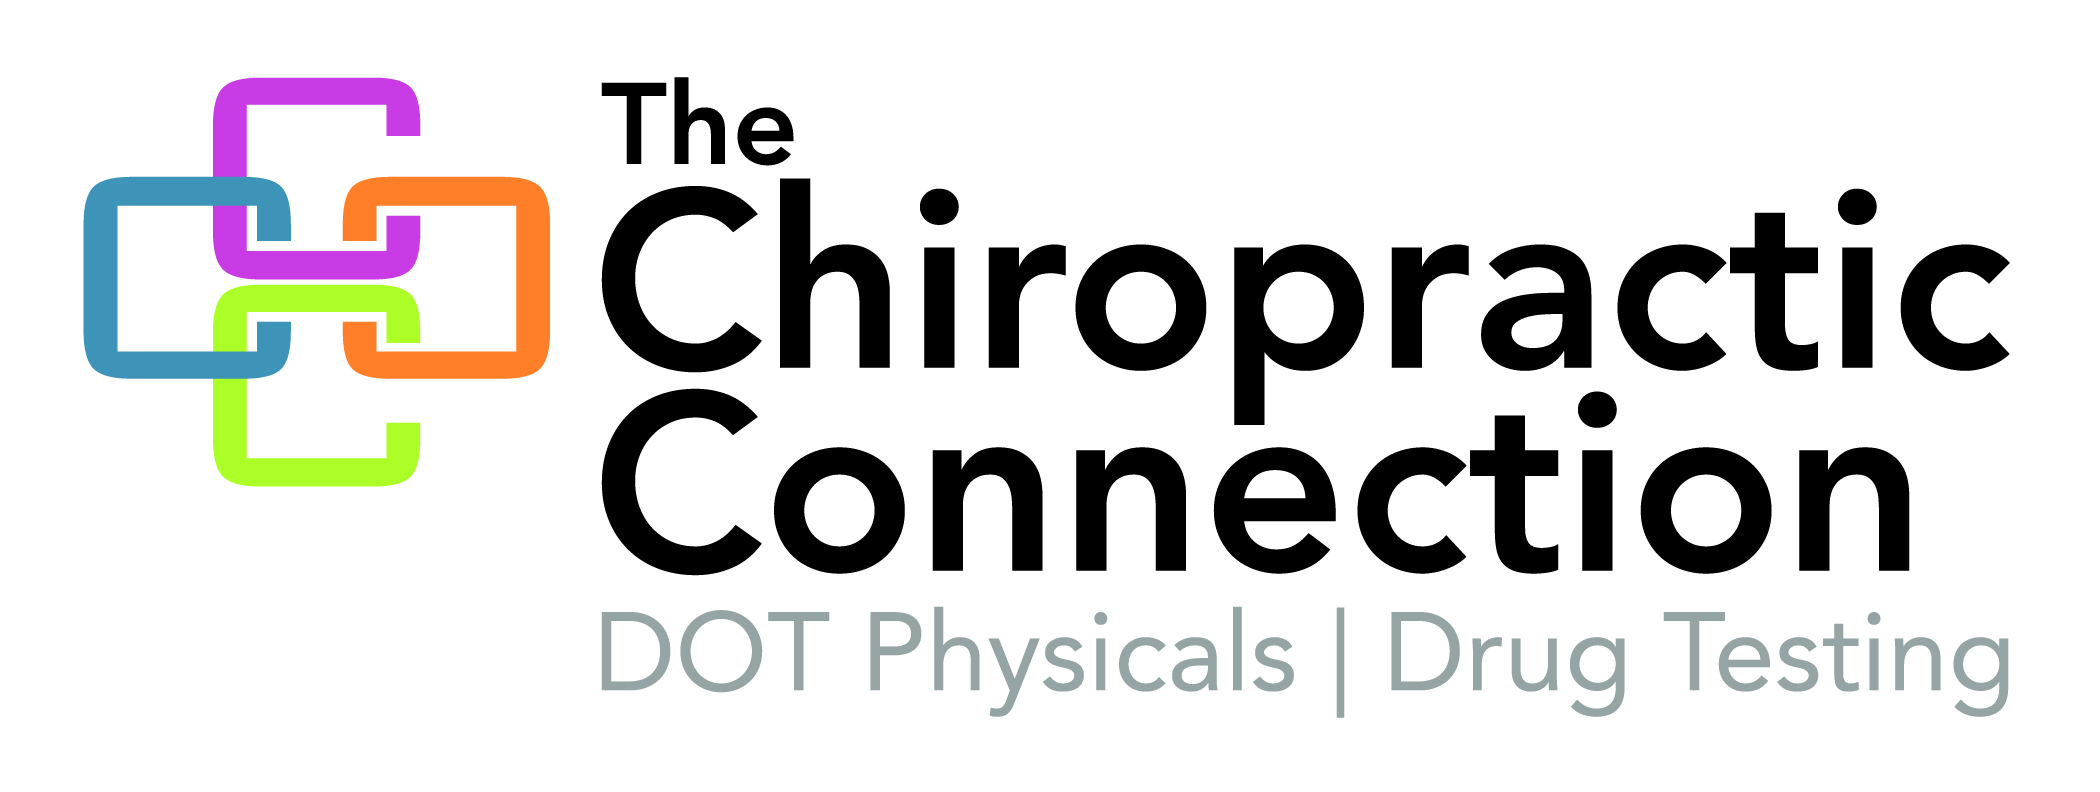 the chiropractic connection Dr. Neil Szeryk